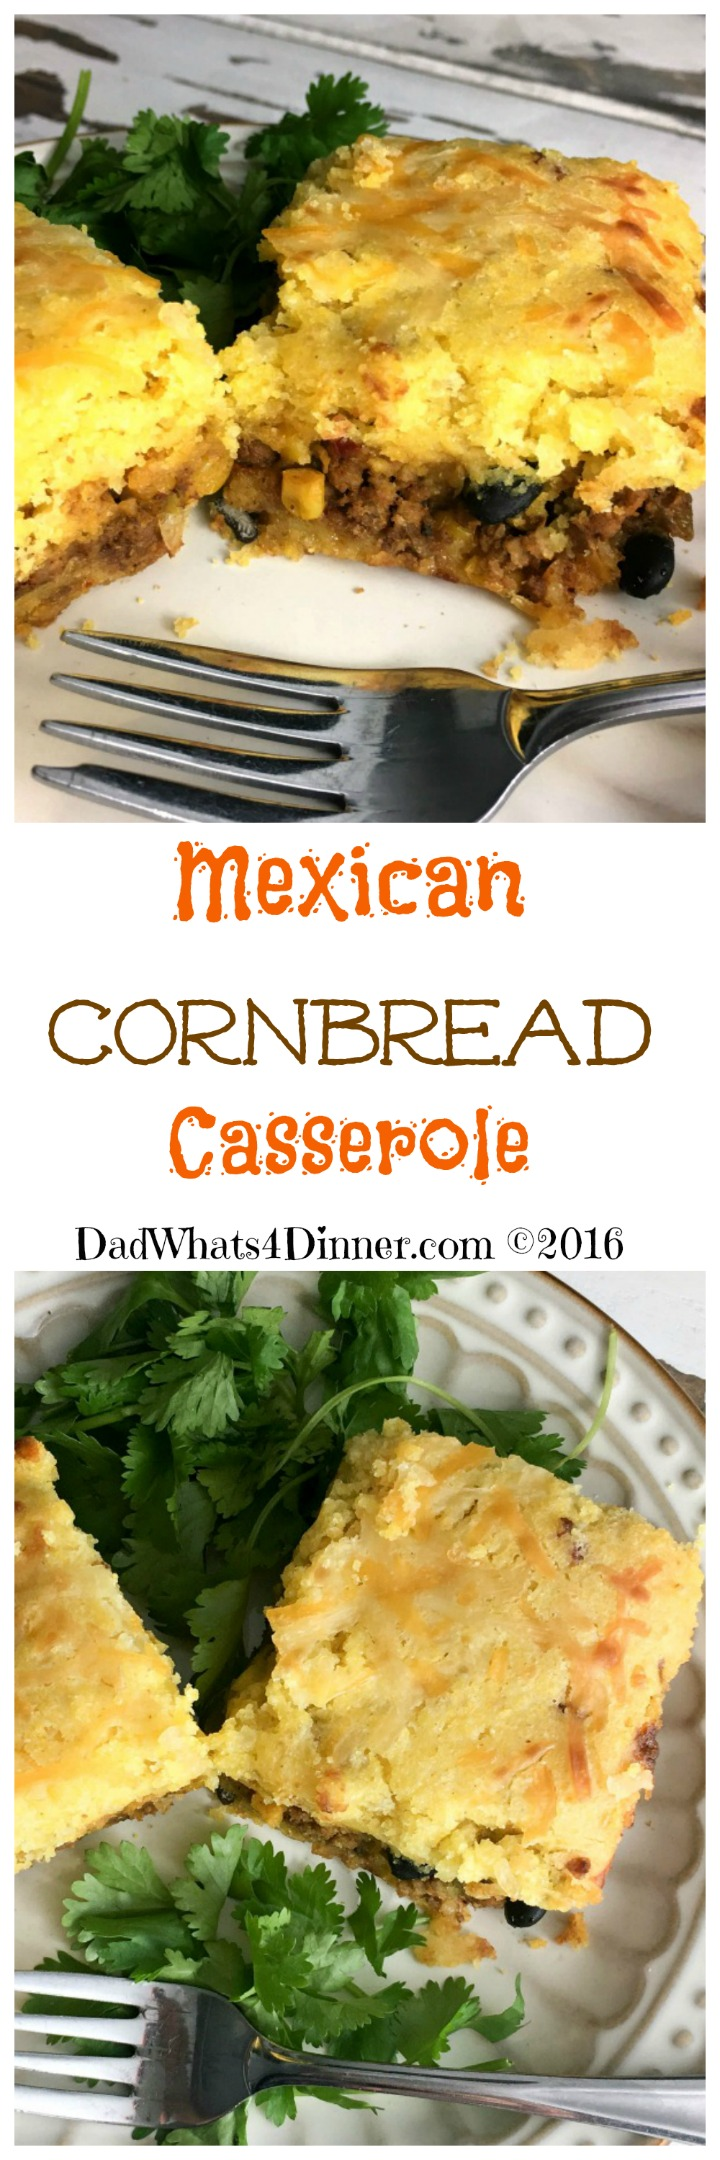 Great fusion between Southern and Mexican comfort food. Mexican Cornbread Casserole is super easy to make and your kids will love it.